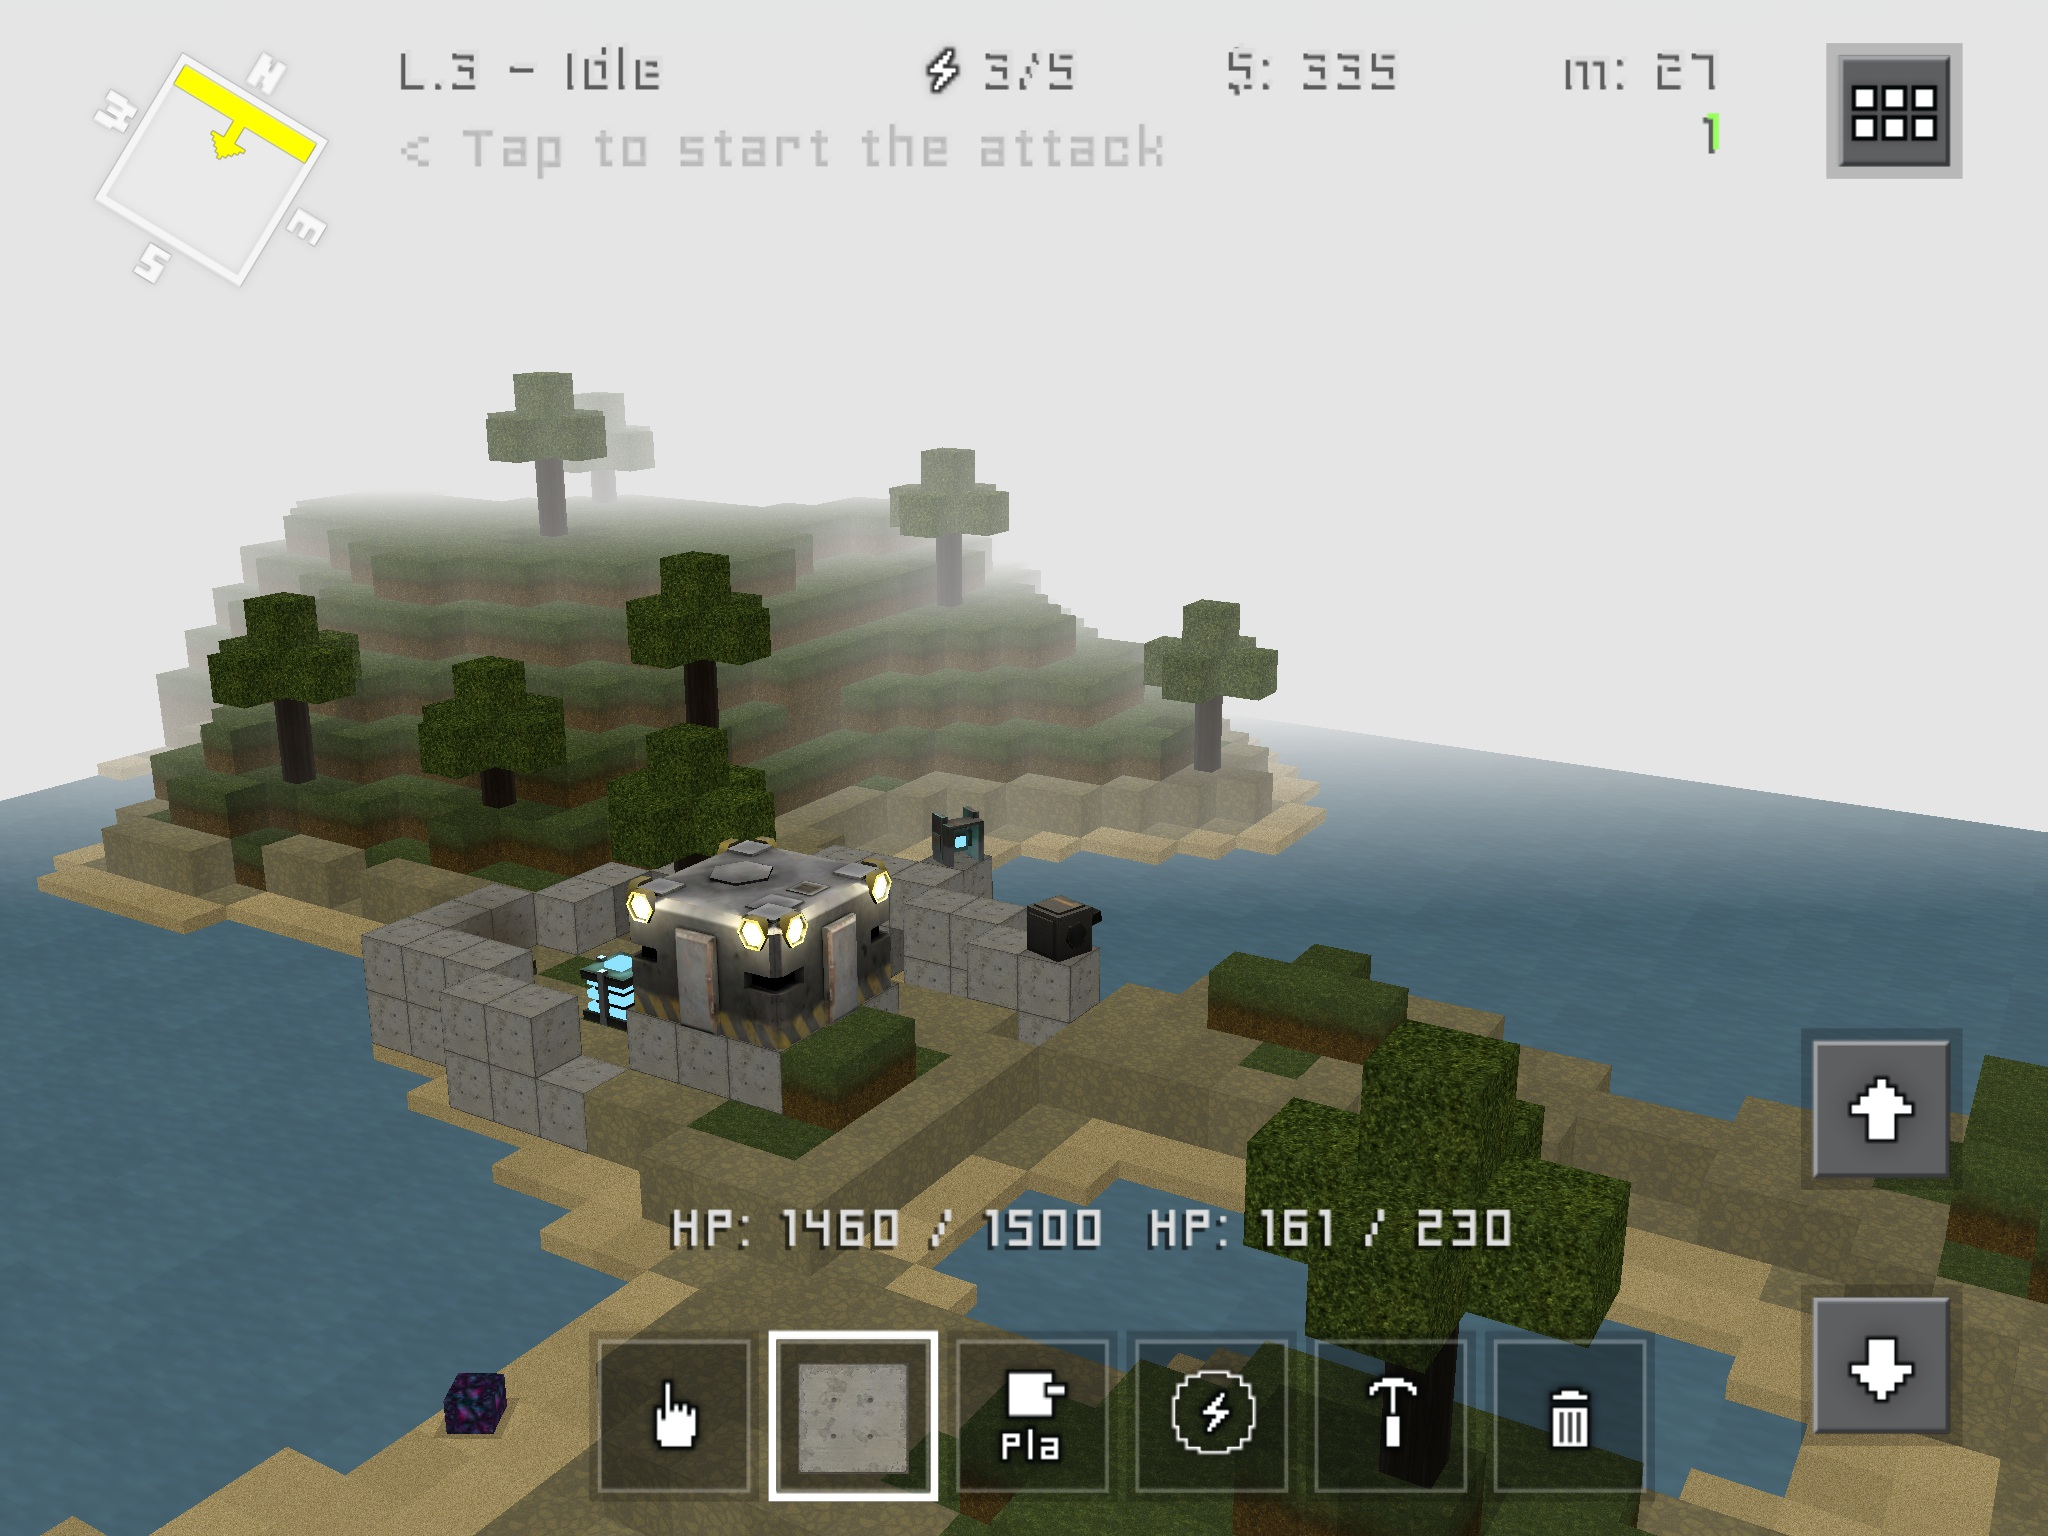 Block Fortress finally brings its mix of Minecraft construction and FPS to Android